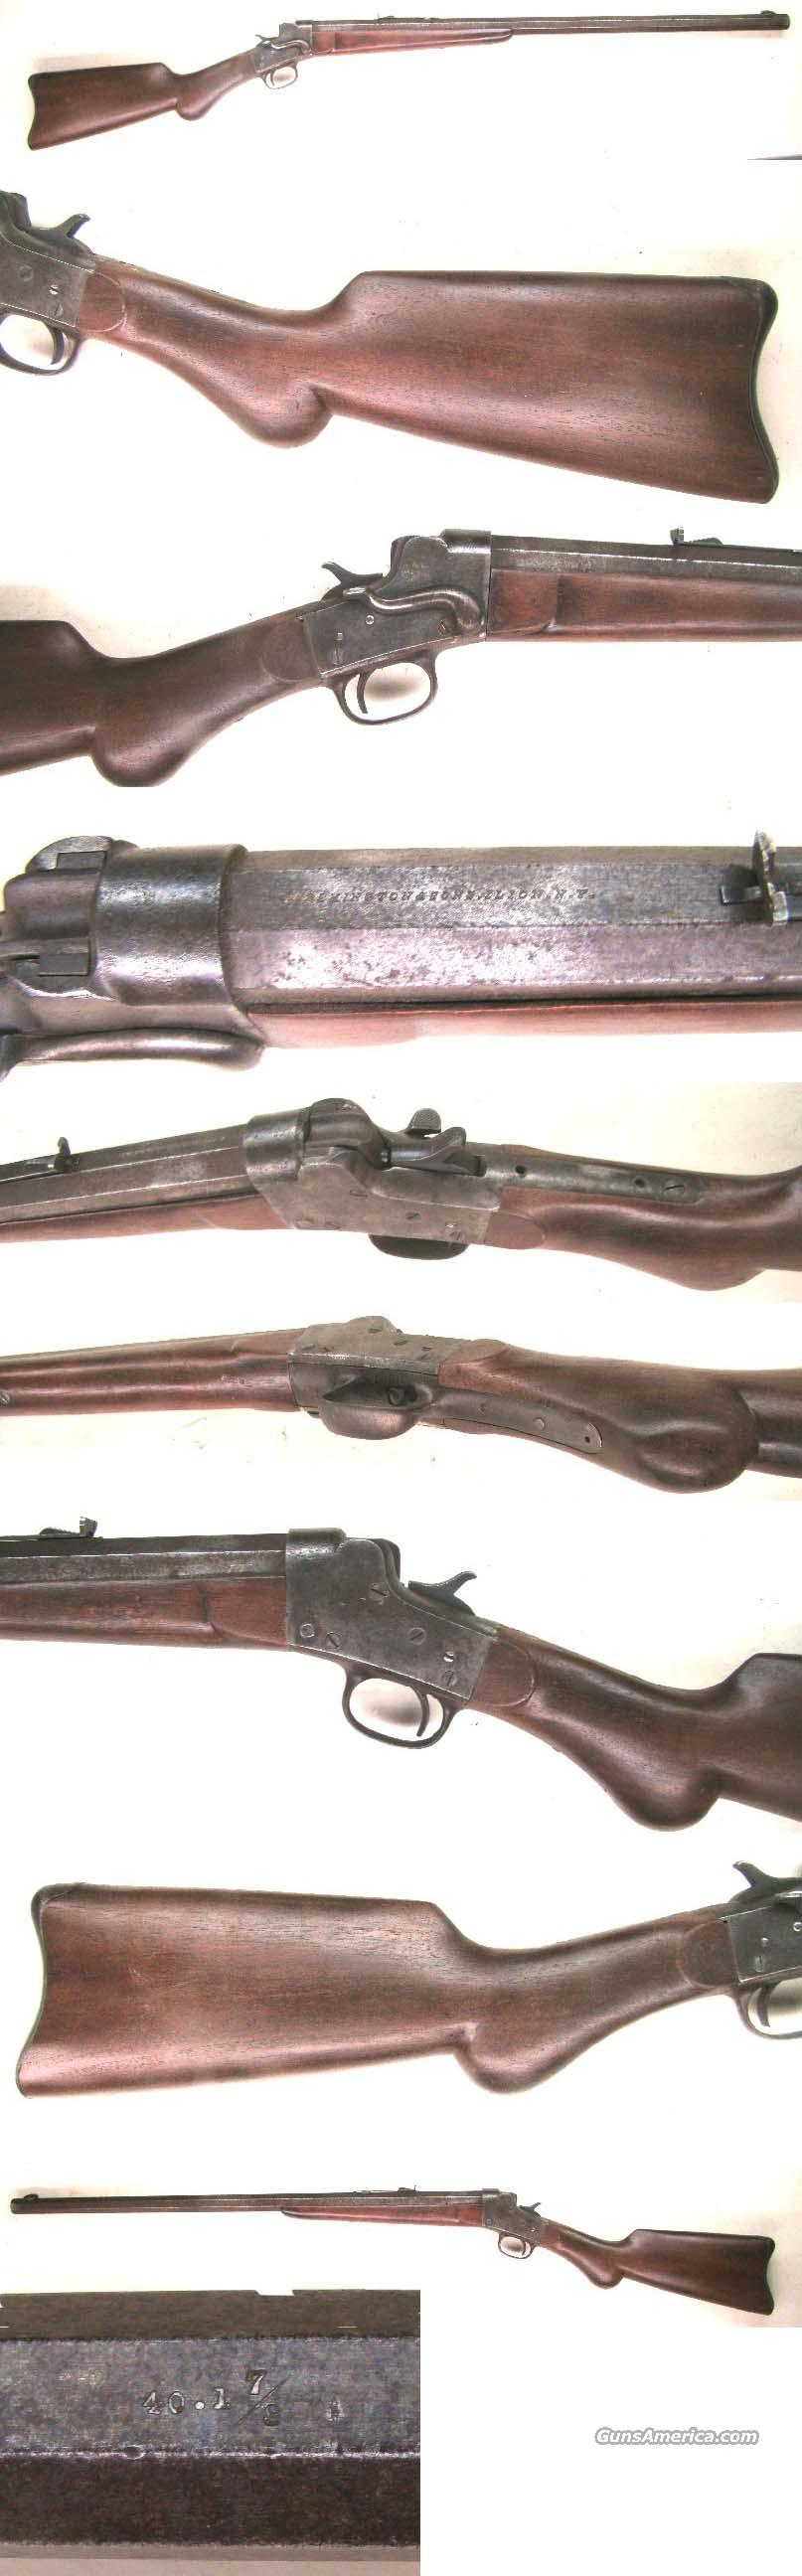 Remington Hepburn Rifle   Guns > Rifles > Remington Rifles - Pre-1899